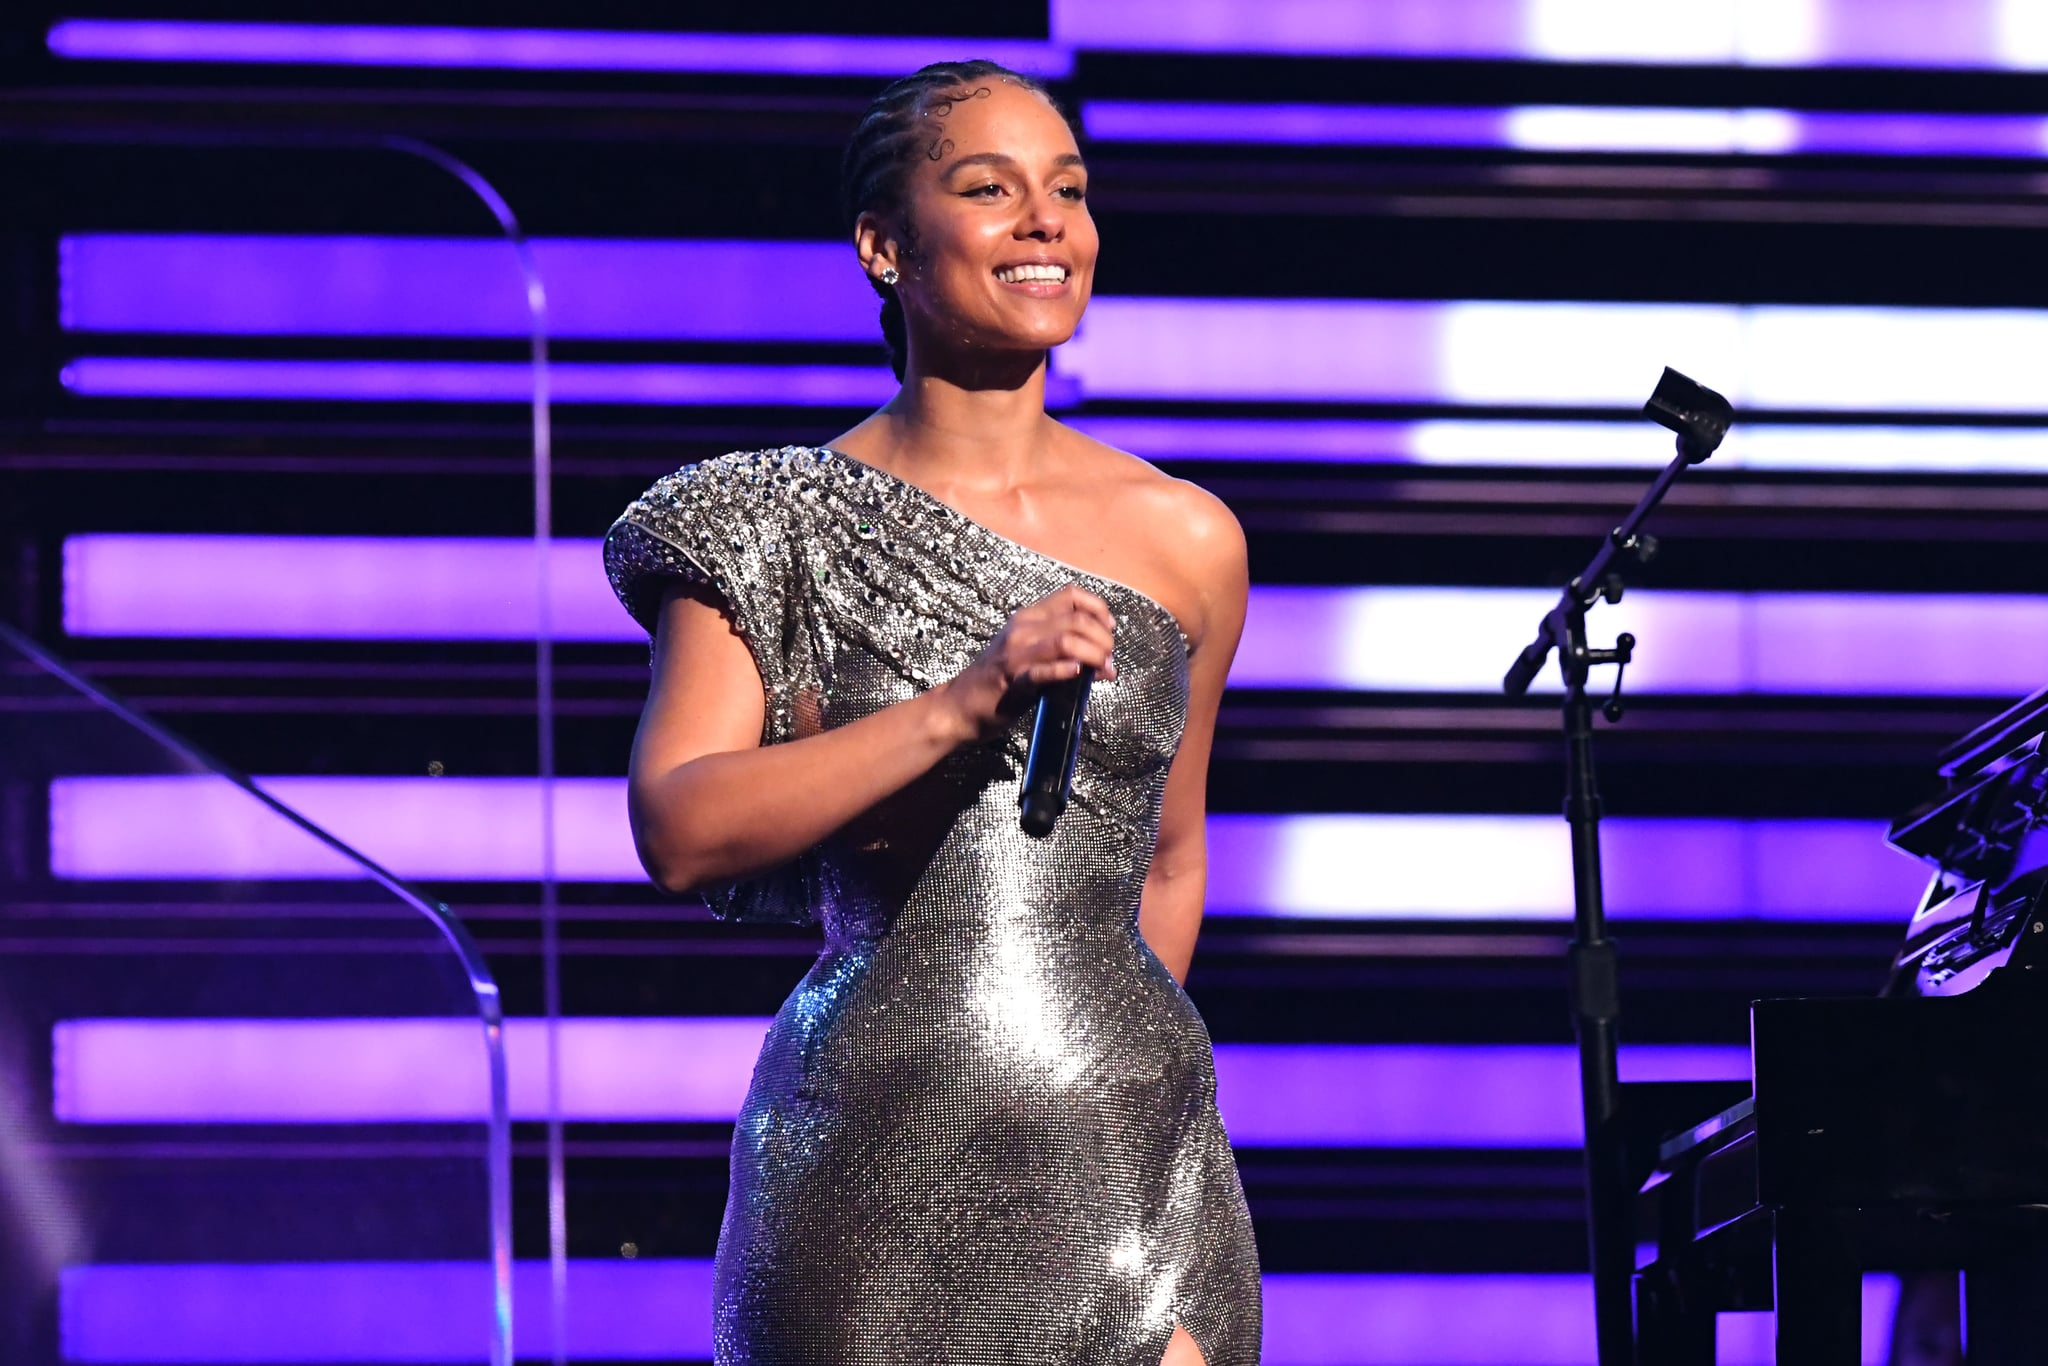 LOS ANGELES, CALIFORNIA - JANUARY 26: Host Alicia Keys performs onstage during the 62nd Annual GRAMMY Awards at Staples Center on January 26, 2020 in Los Angeles, California. (Photo by Jeff Kravitz/FilmMagic)